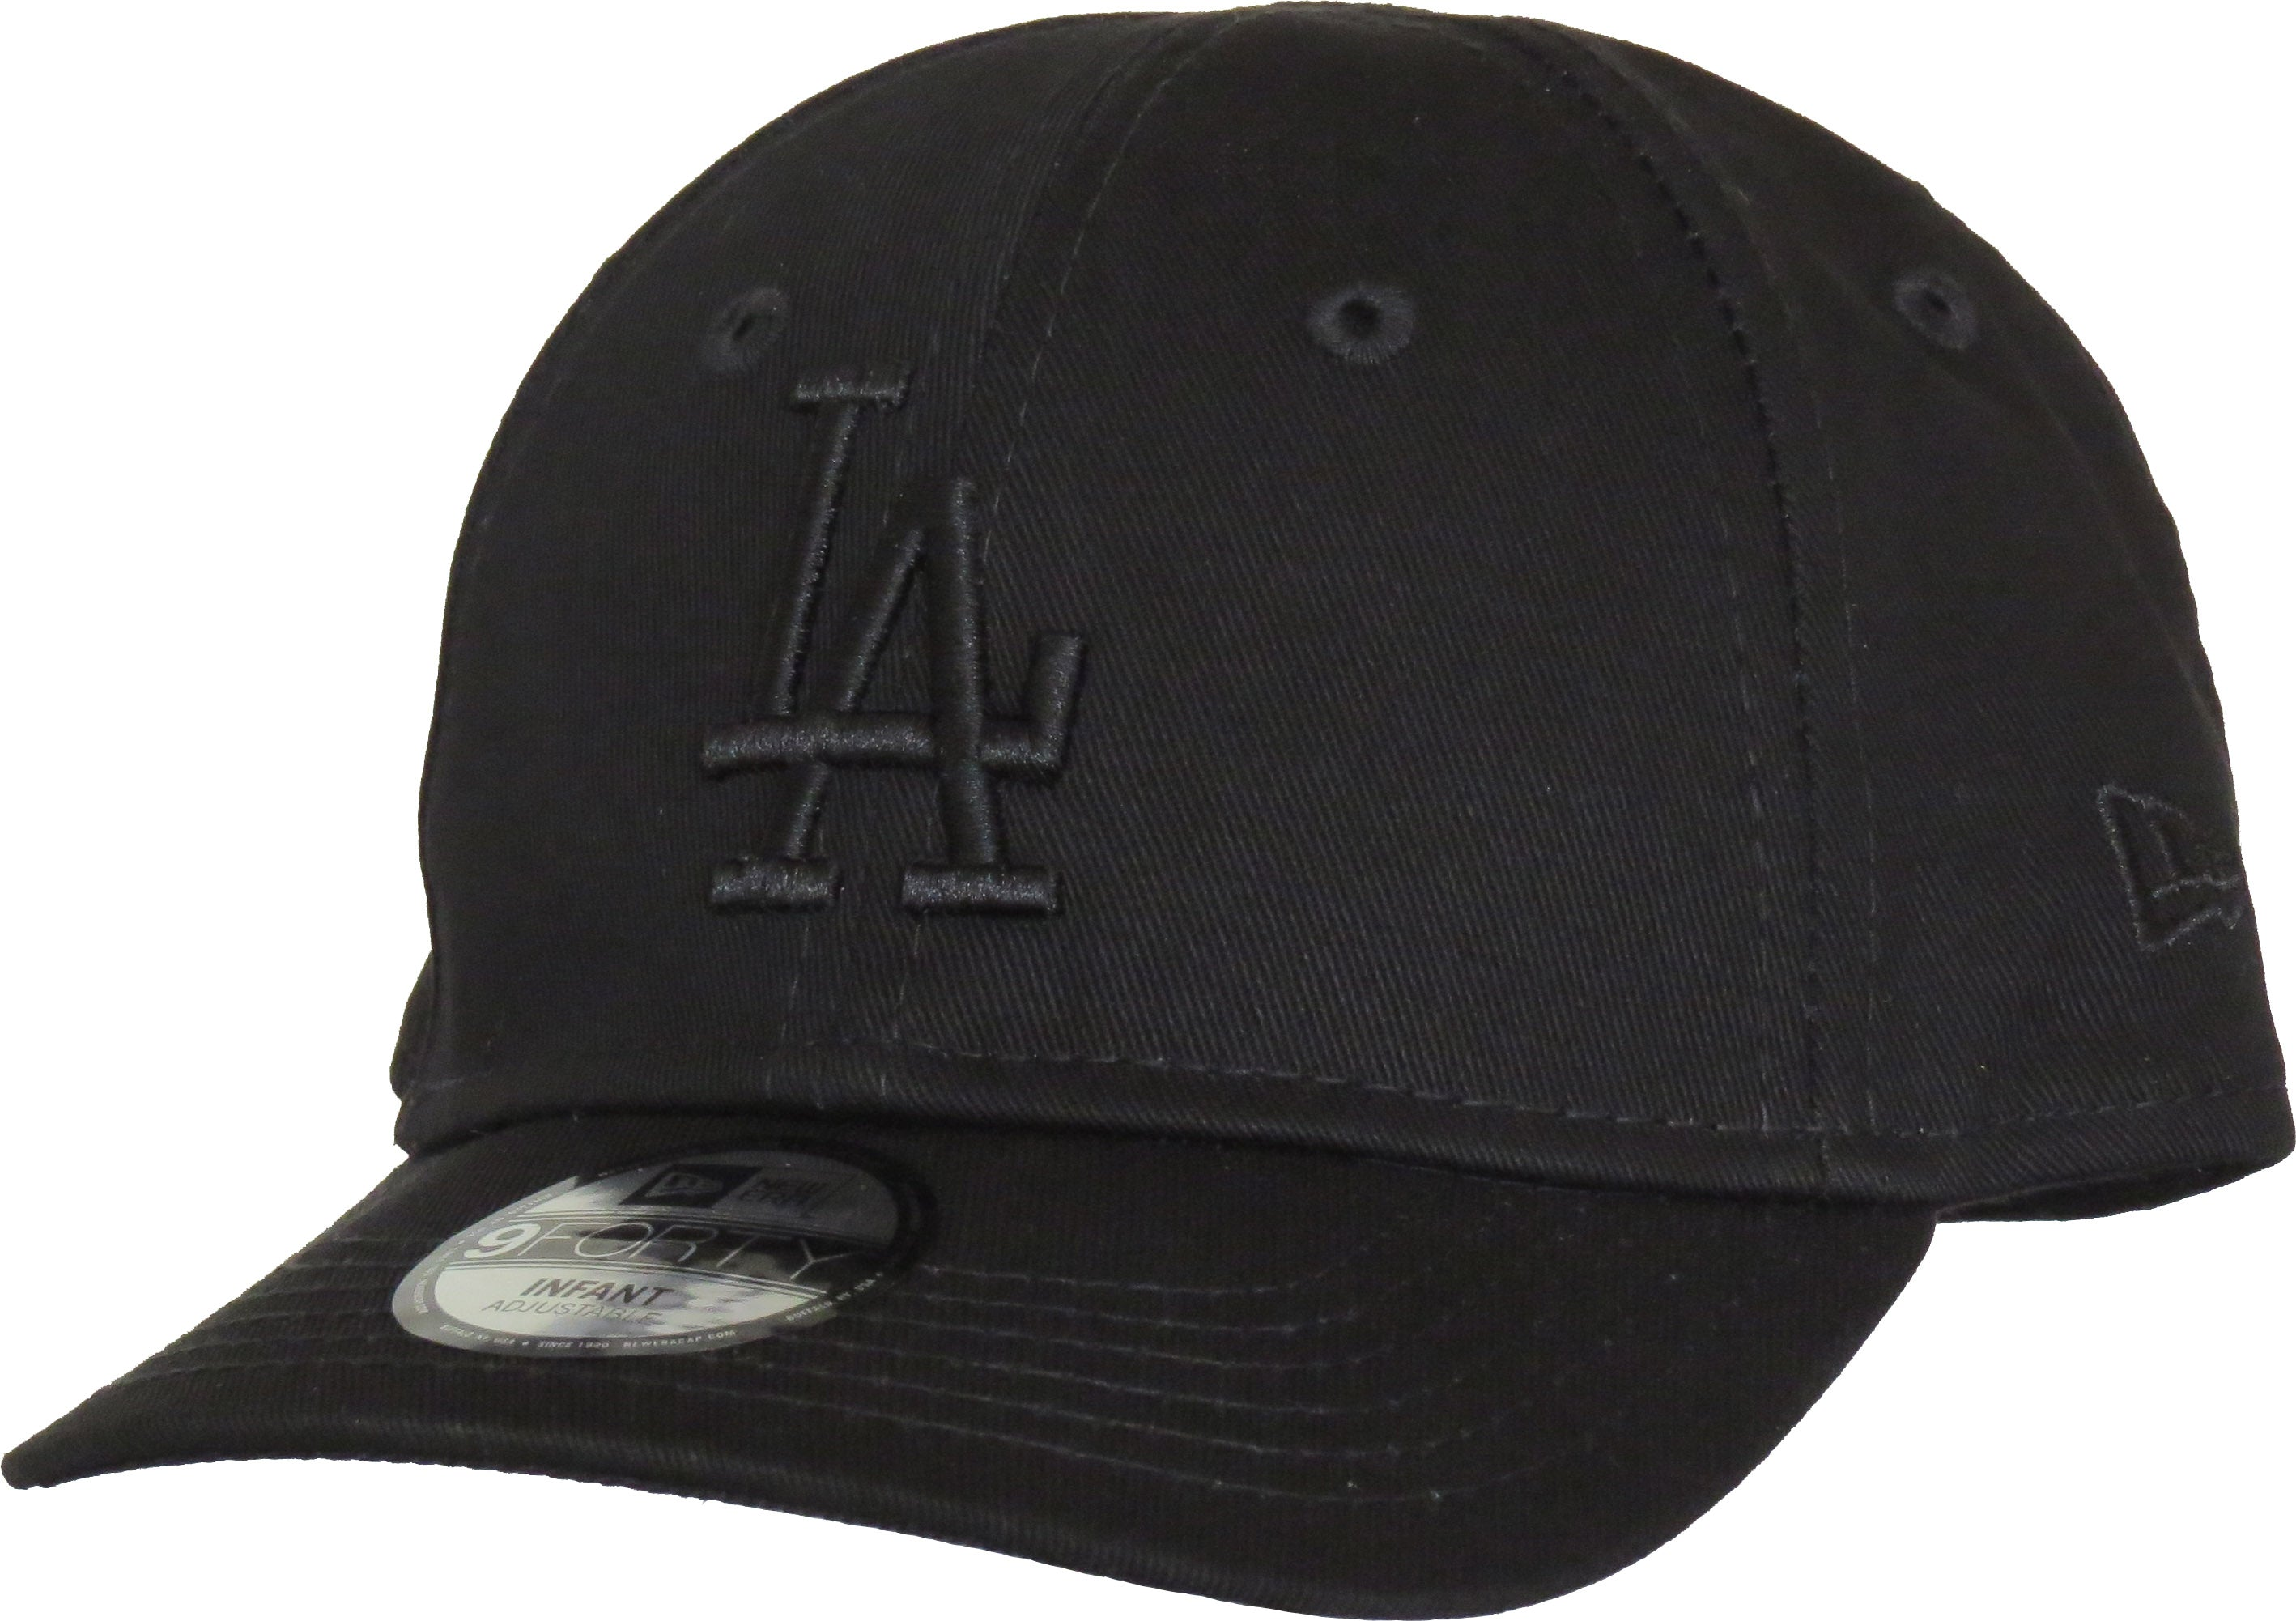 5ec255a81da LA Dodgers New Era 940 Stretch Fit Infants Black Cap (0-2 years) ...